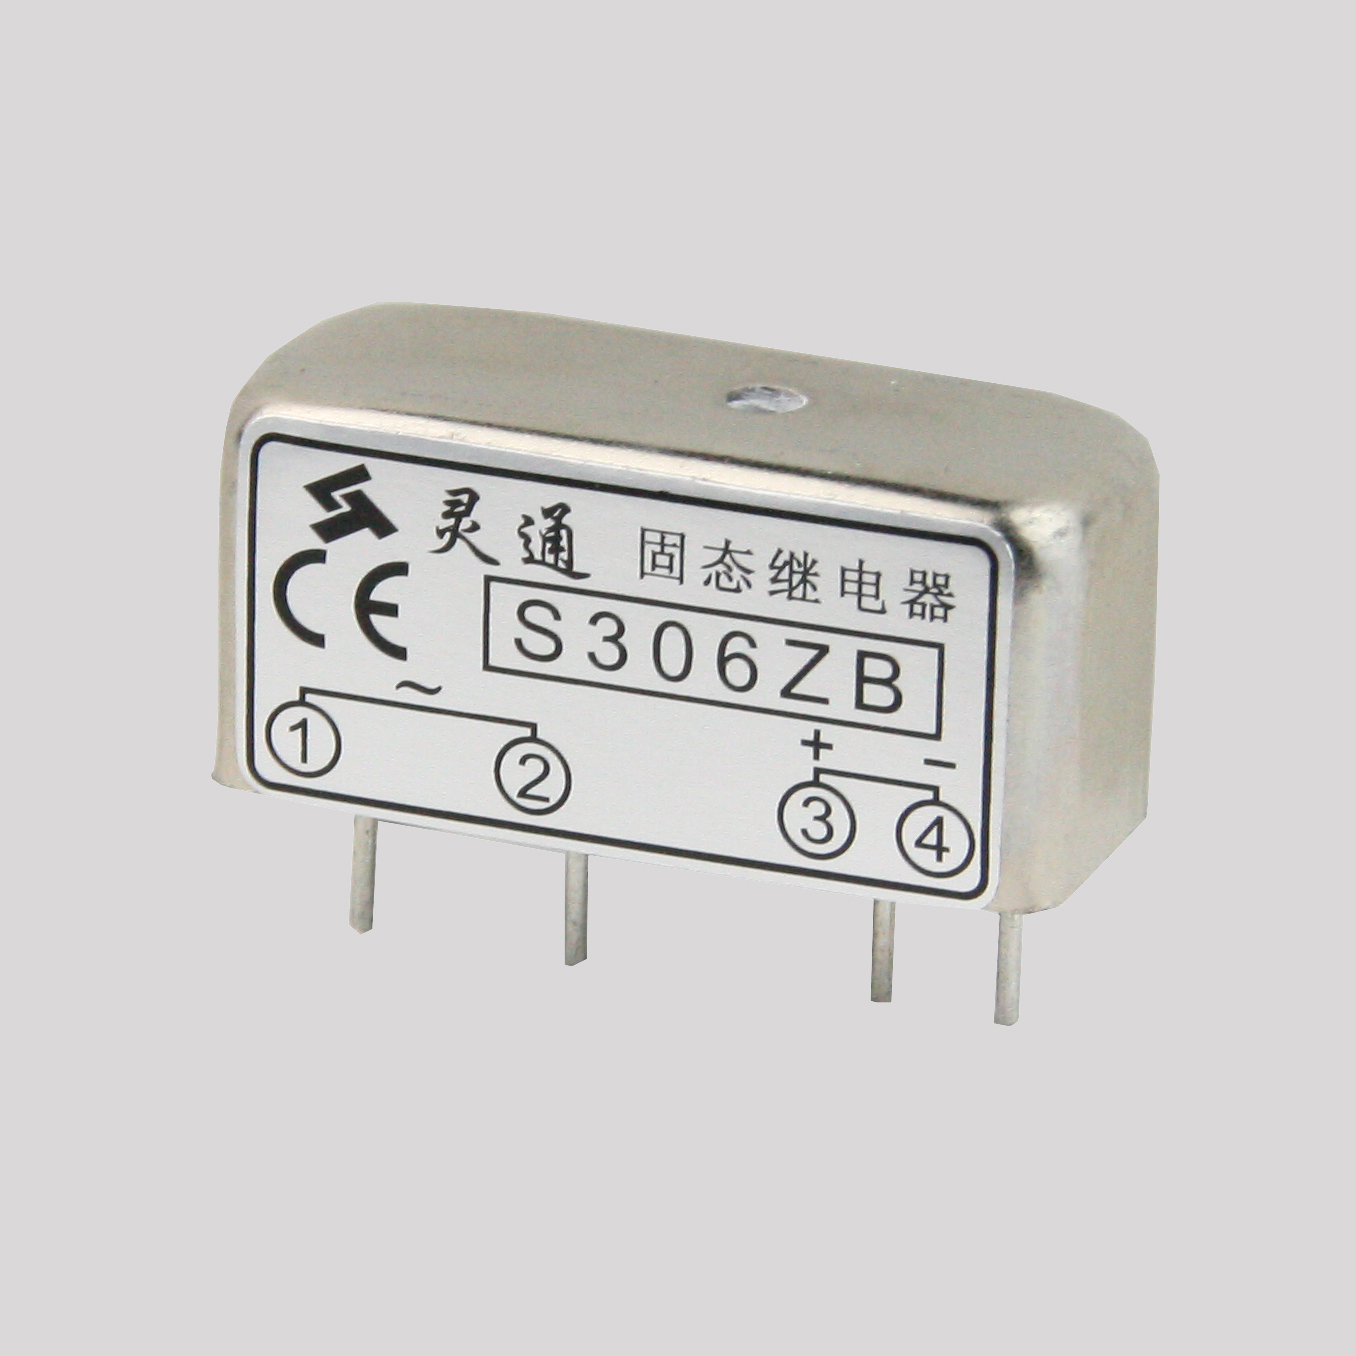 Lingtong Lt Solid State Relay S206zb S306zb 6a Factory Direct Sales Small Wiring Diagram One Year Replacement Import Quality